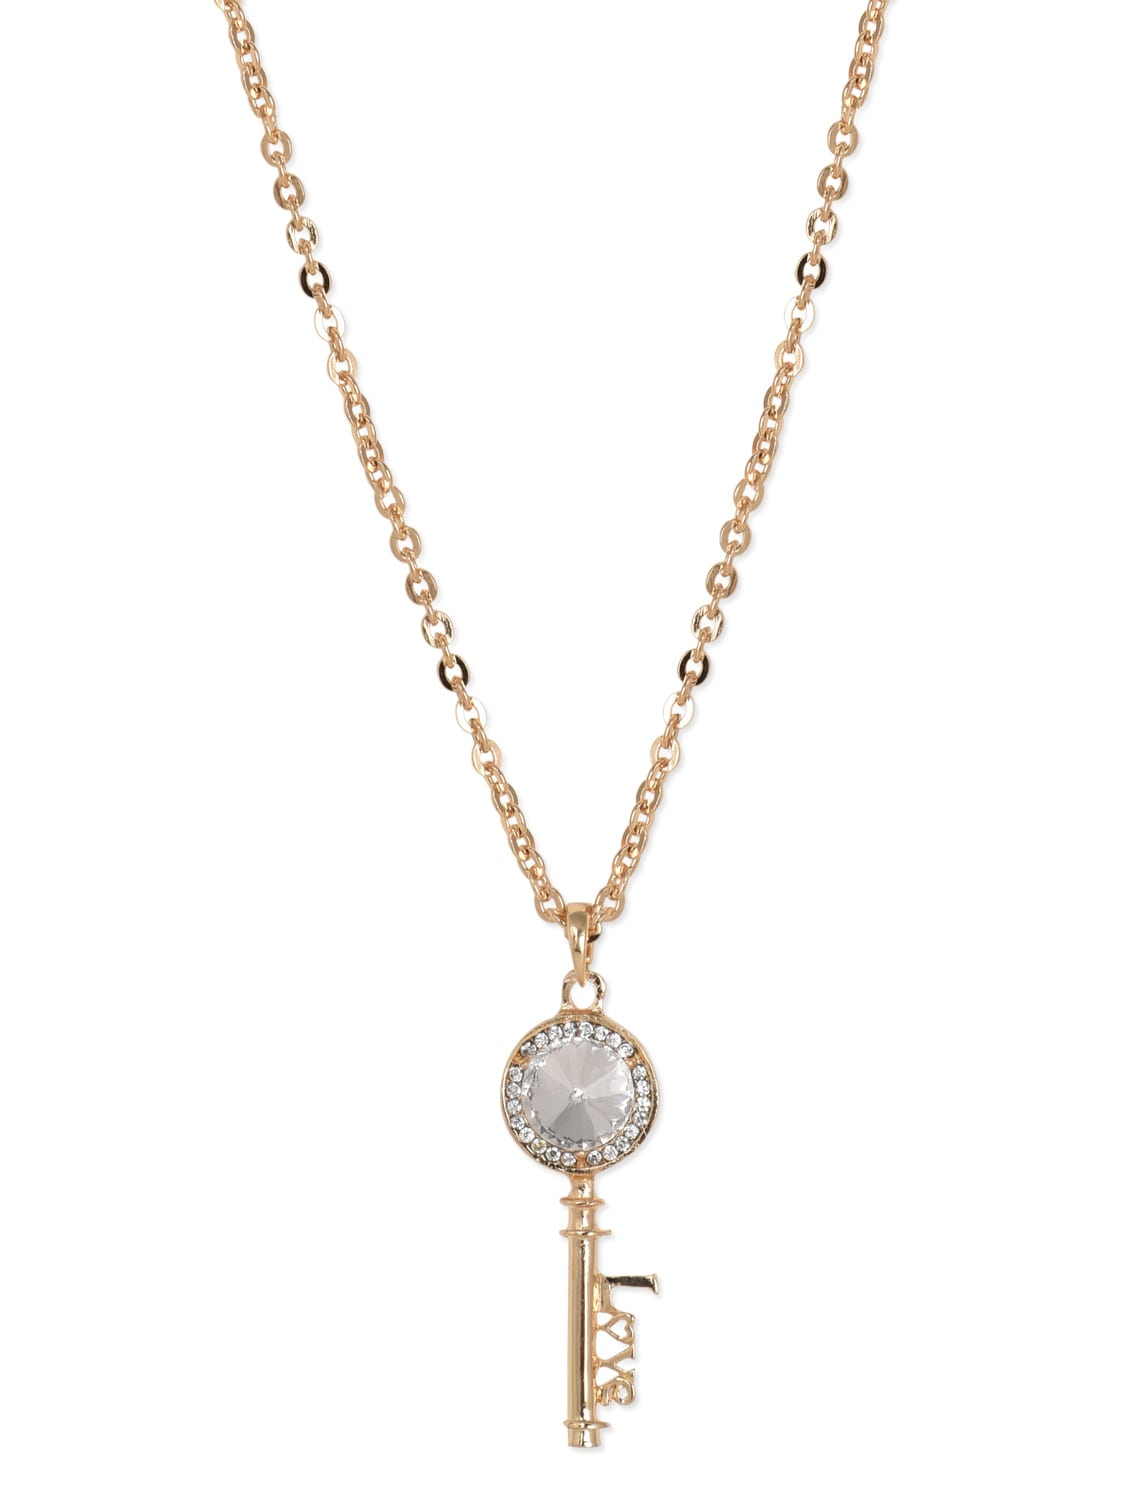 Stone Studded Metal Alloy Necklace - Blueberry